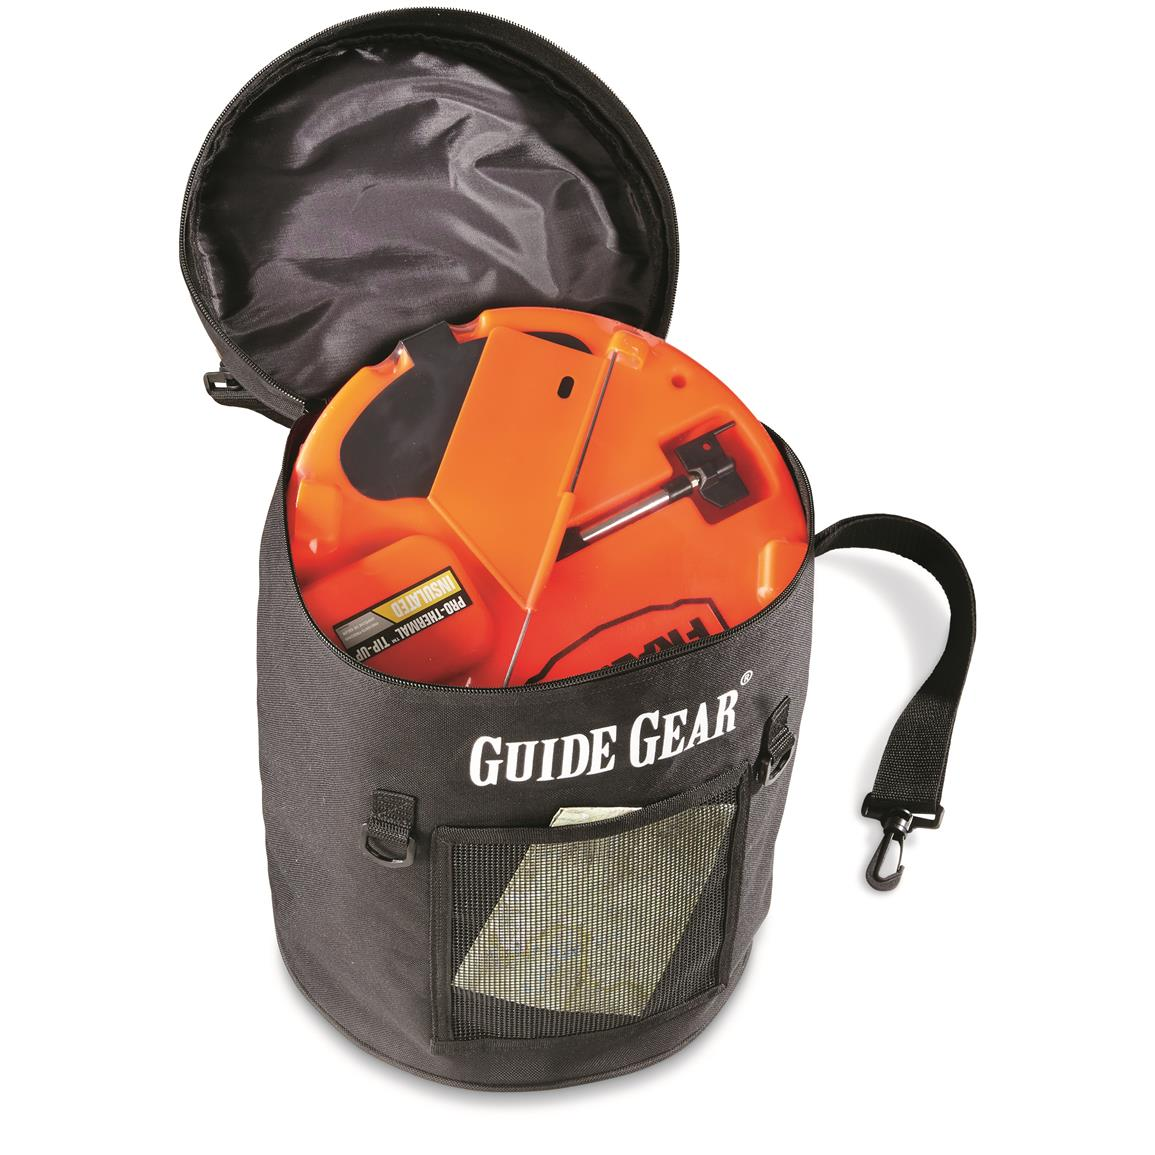 Made of heavy-duty 600 x 600 Denier polyester  sc 1 st  Sportsmanu0027s Guide & Guide Gear Ice Fishing Tip-Up Bag 3 Gallon - 670057 Ice Fishing ...